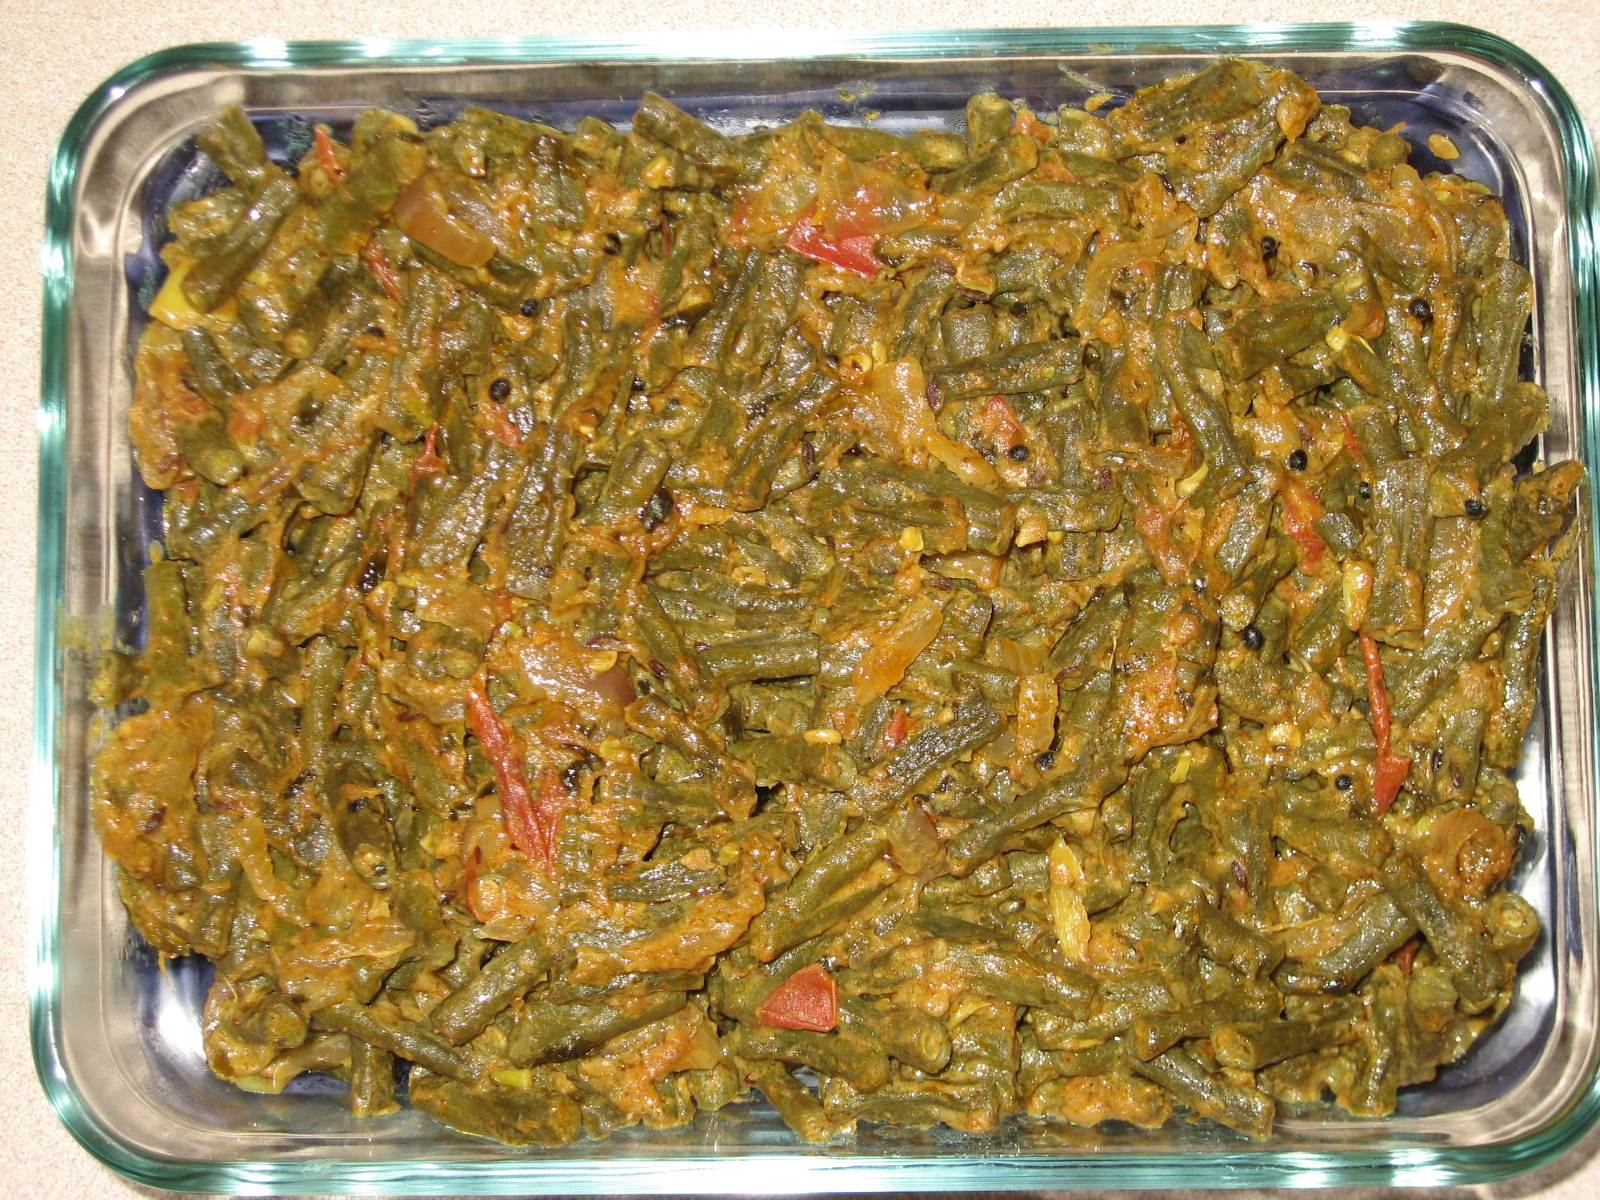 Chinese Long Bean/ Yard Long Bean Curry (South Indian Style) picture